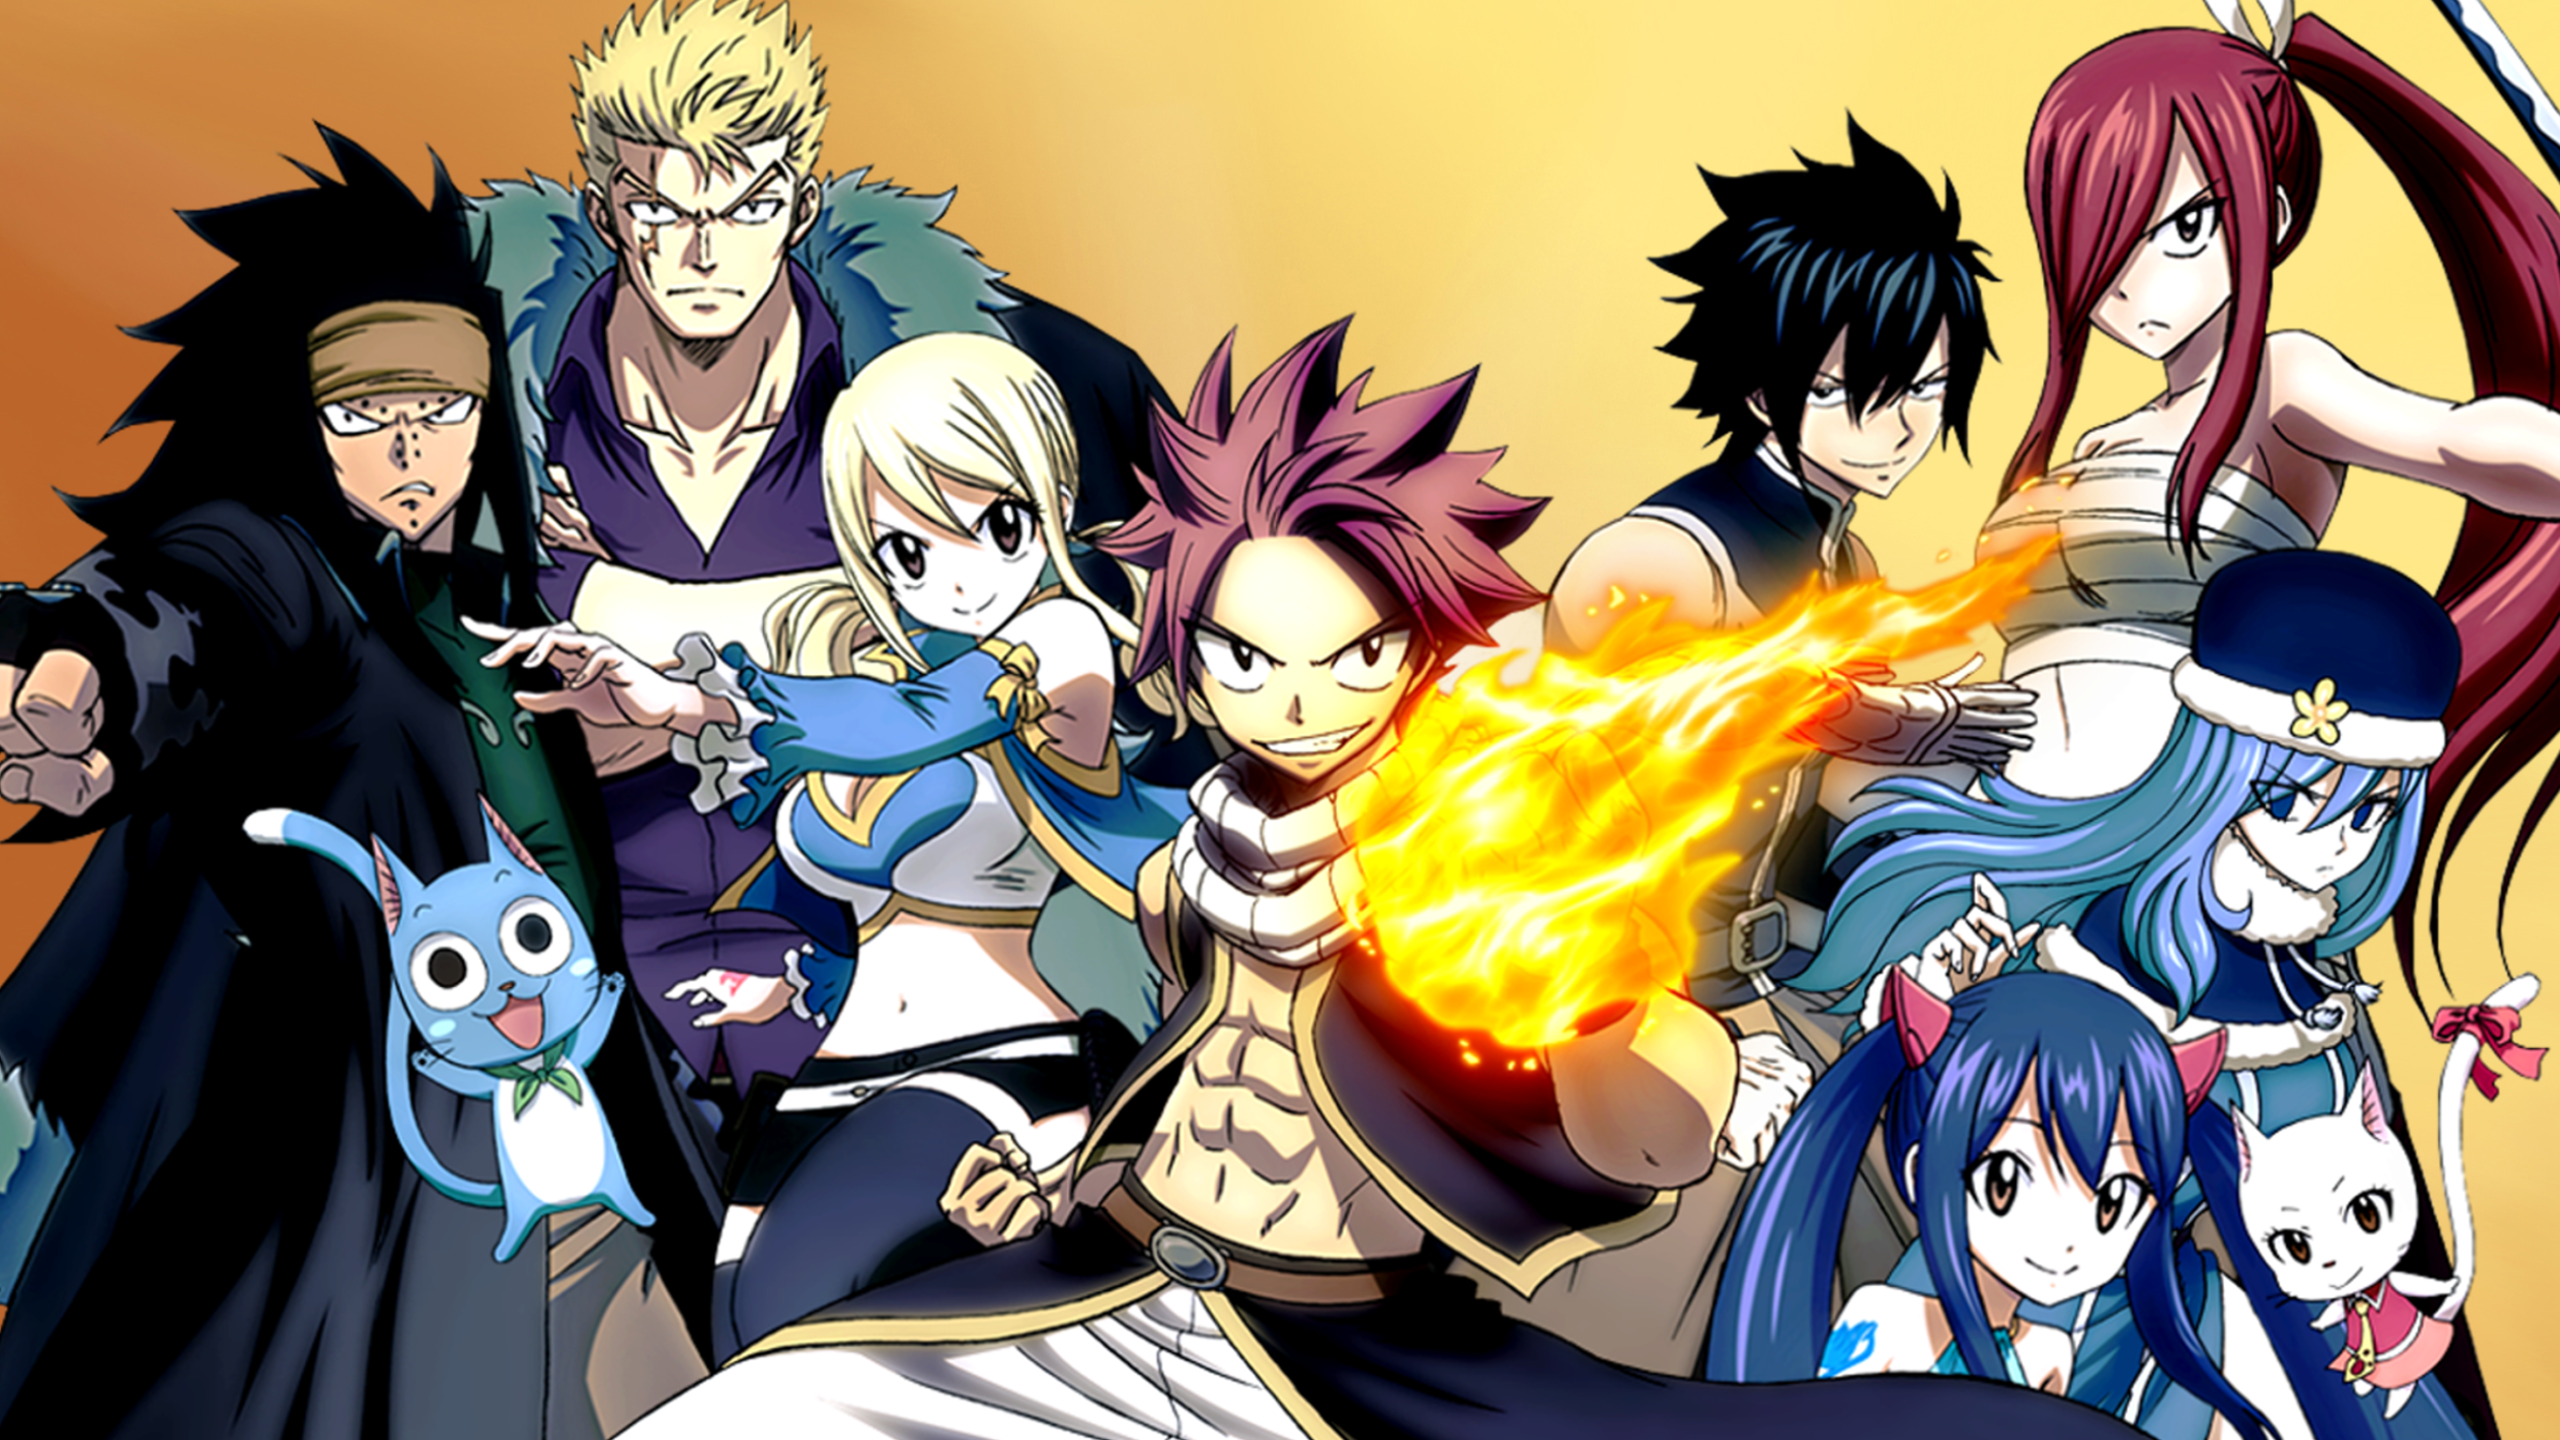 Fairy Tail Computer Wallpapers Desktop Backgrounds X Fairy Tail